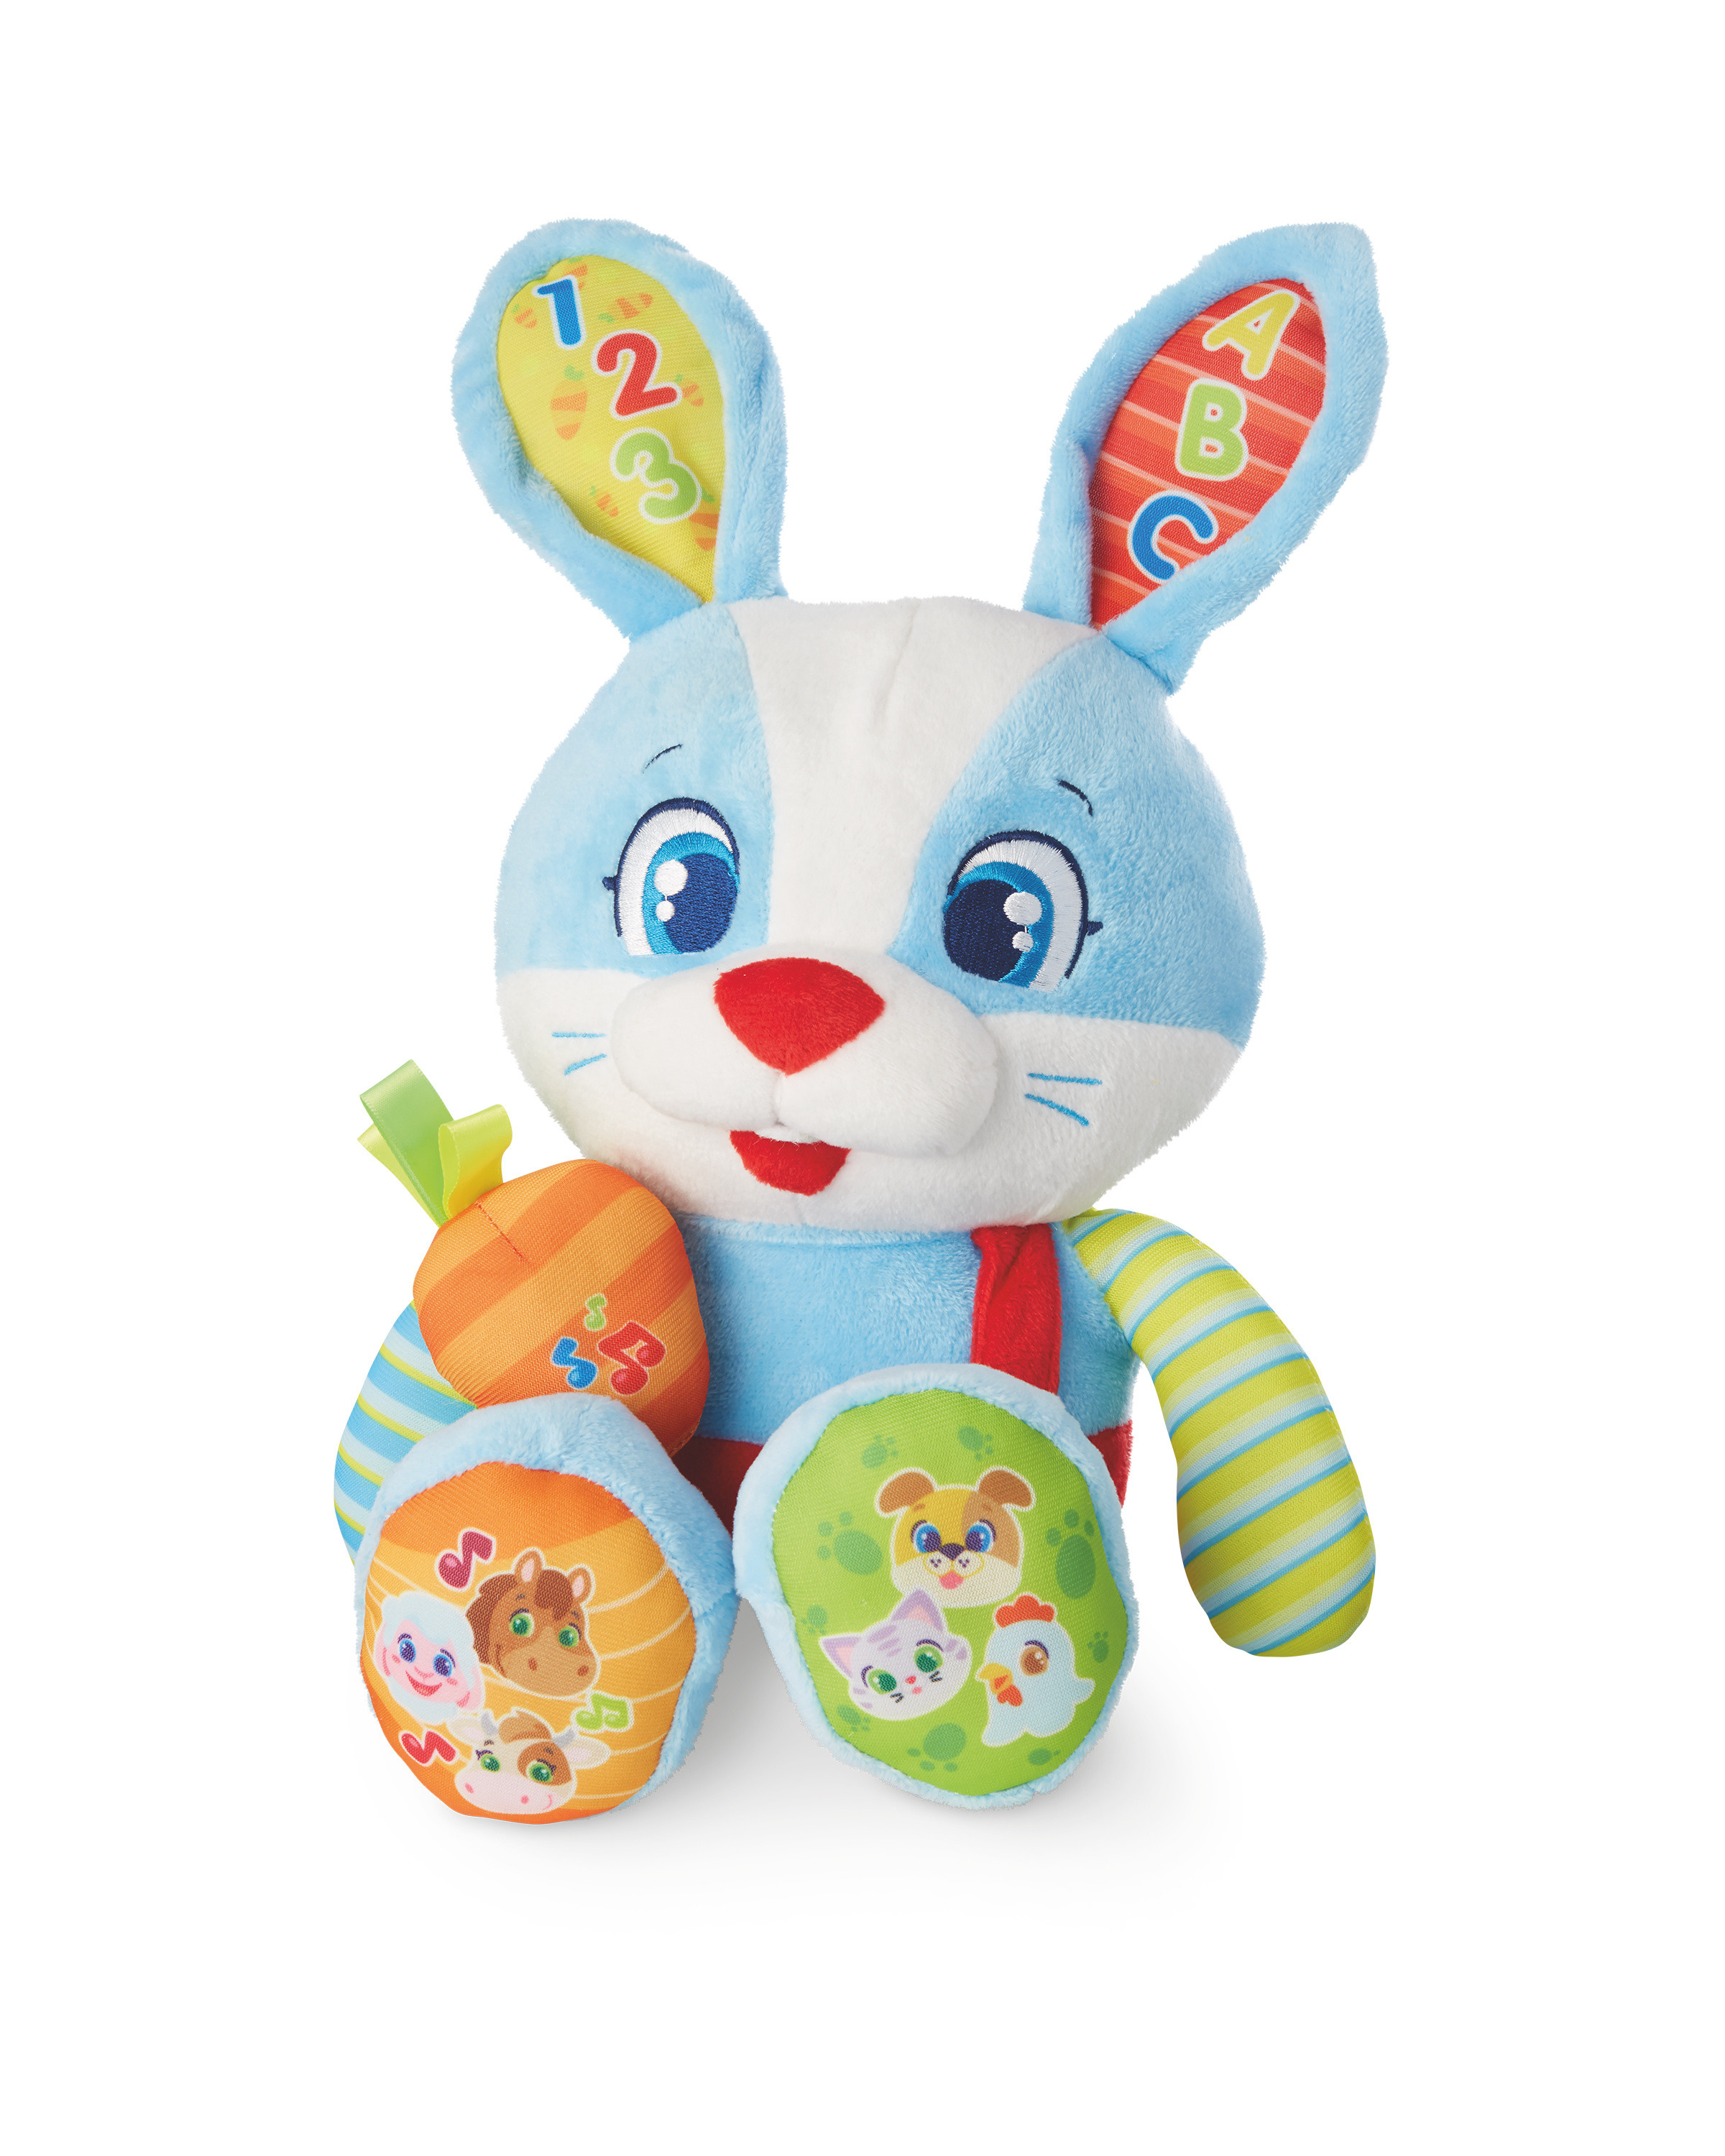 Plush Rabbit Interactive Baby Toy - ALDI UK